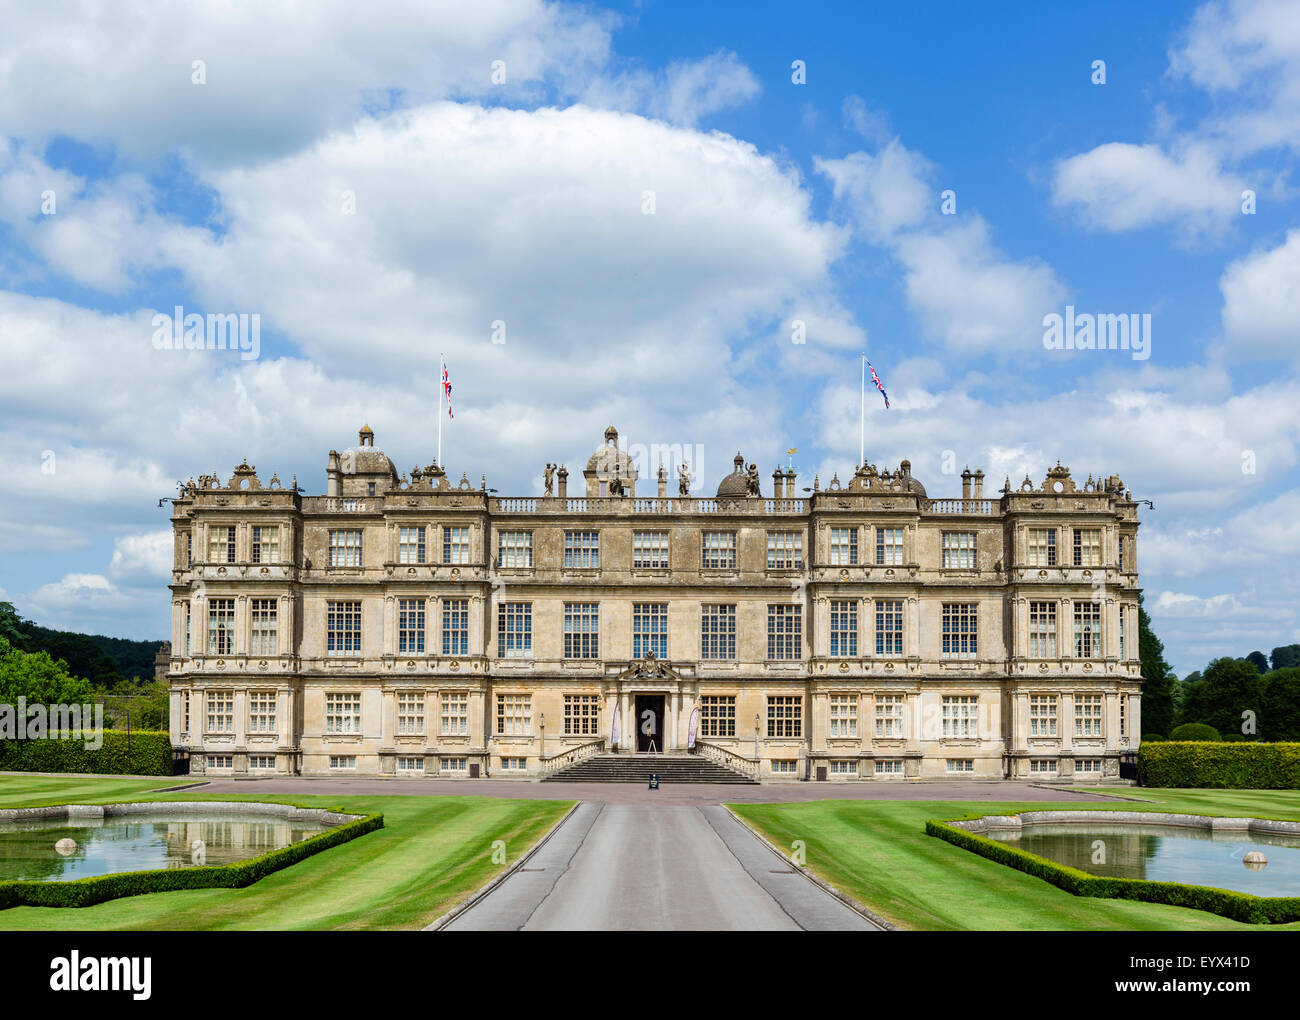 Longleat House, a 16thC Elizabethan stately home and seat of the Marquess of Bath, near Warminster, Wiltshire, England - Stock Image